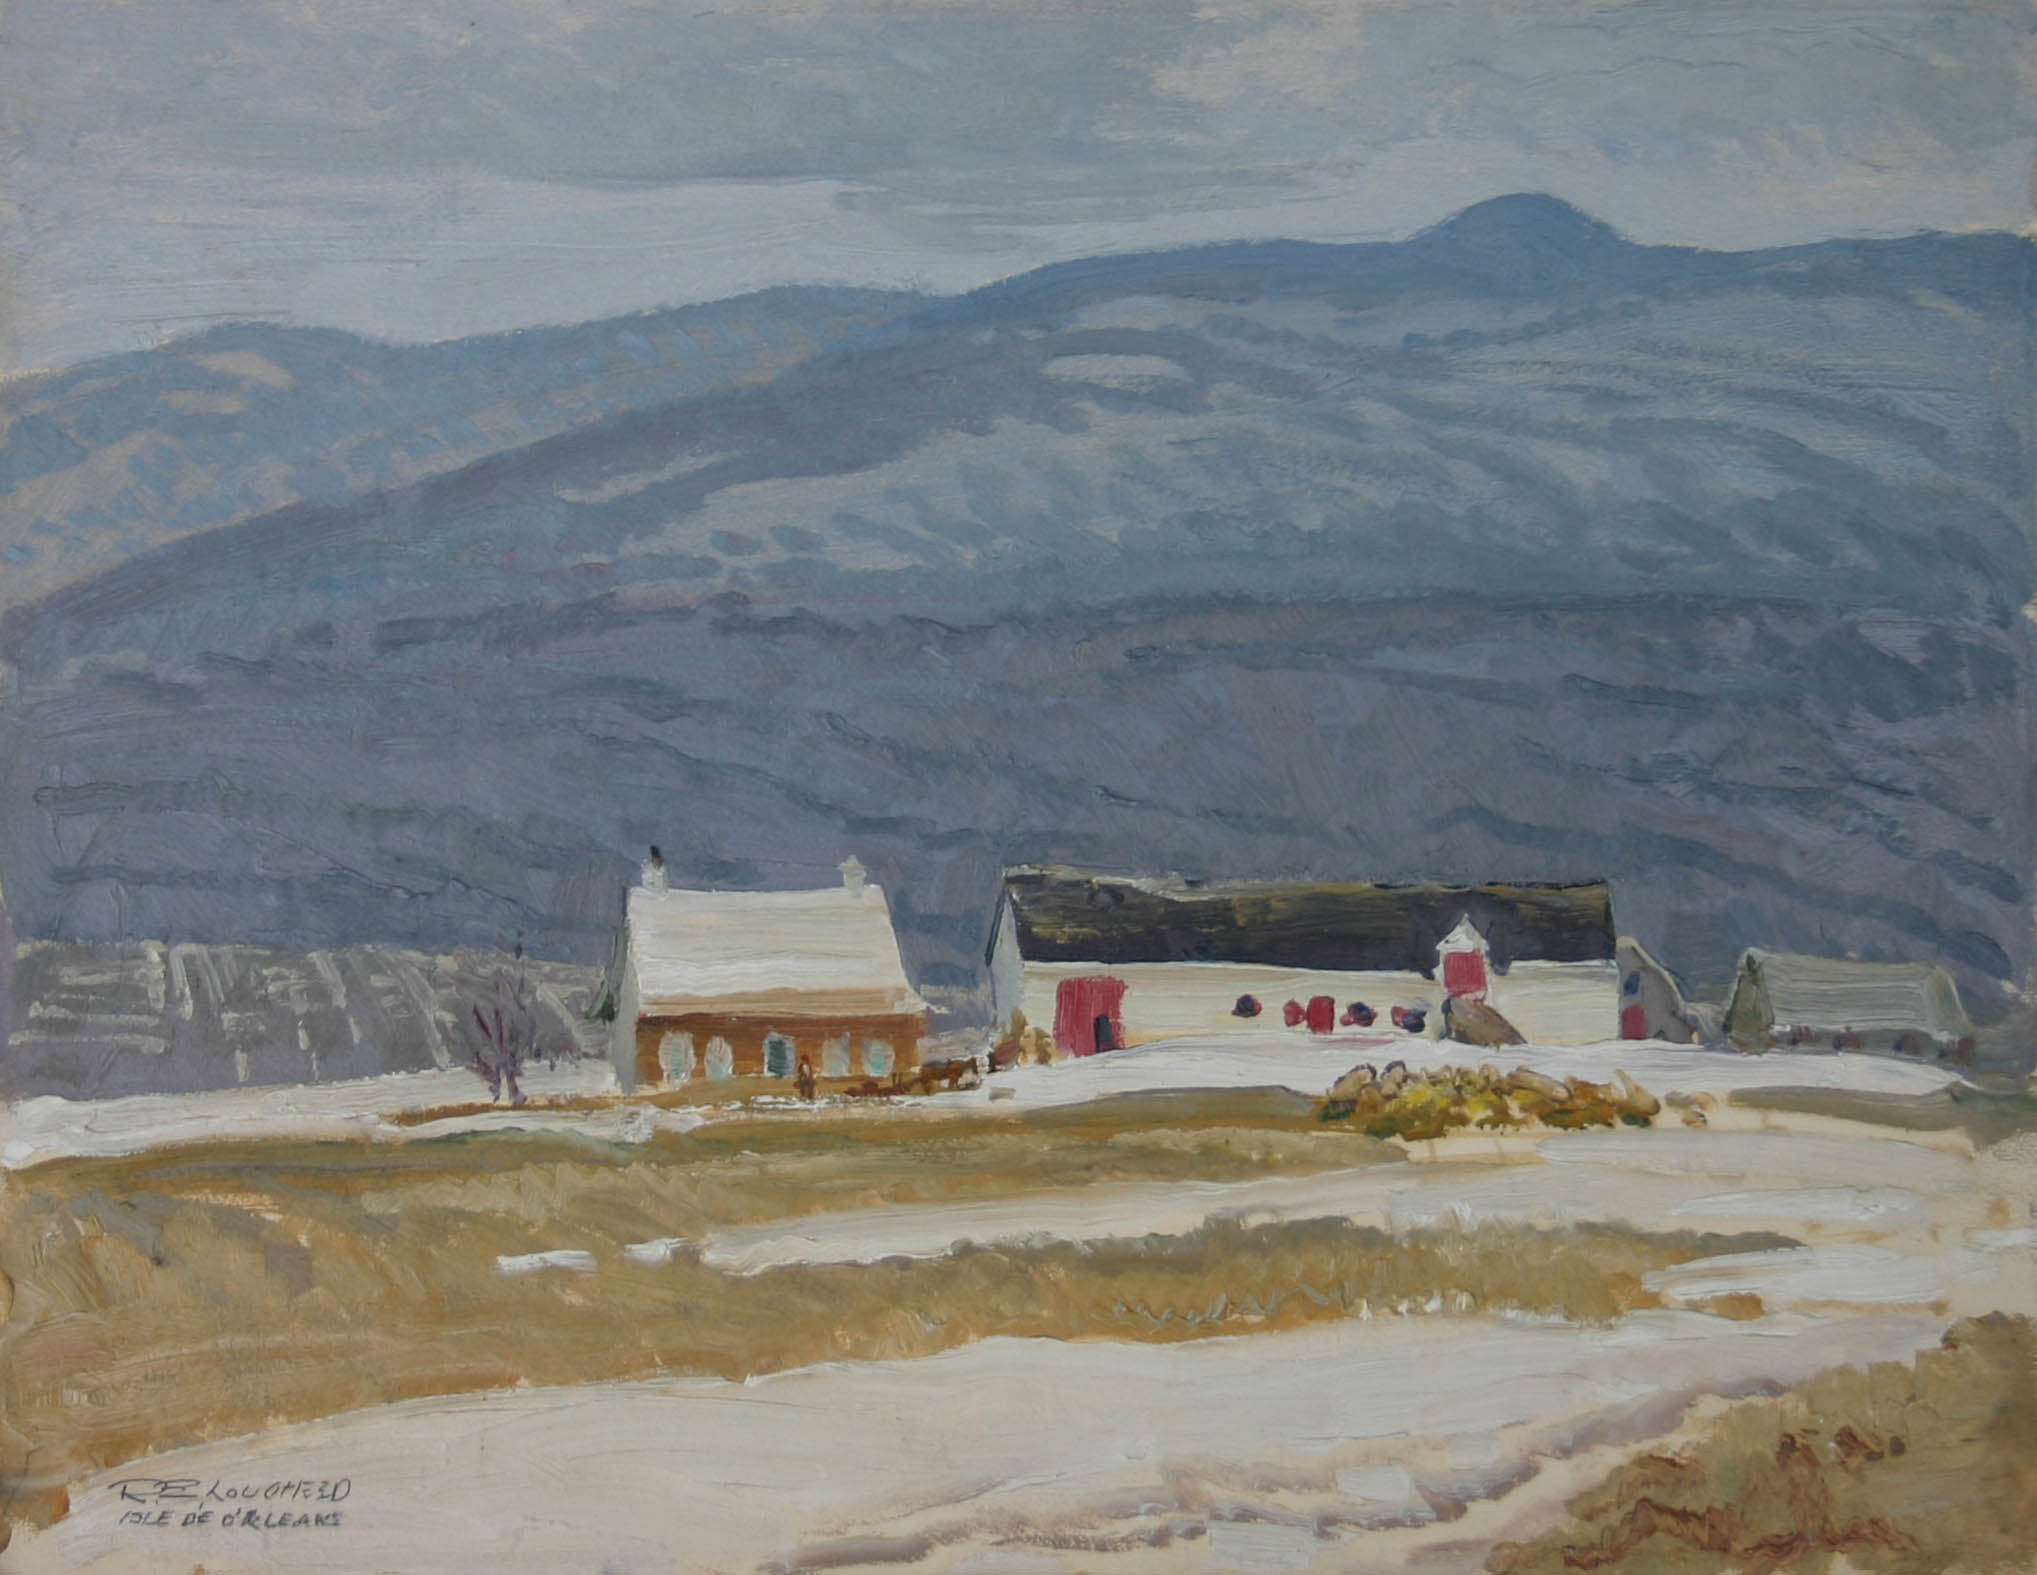 Isle D'Orleans by  Robert Lougheed - Masterpiece Online